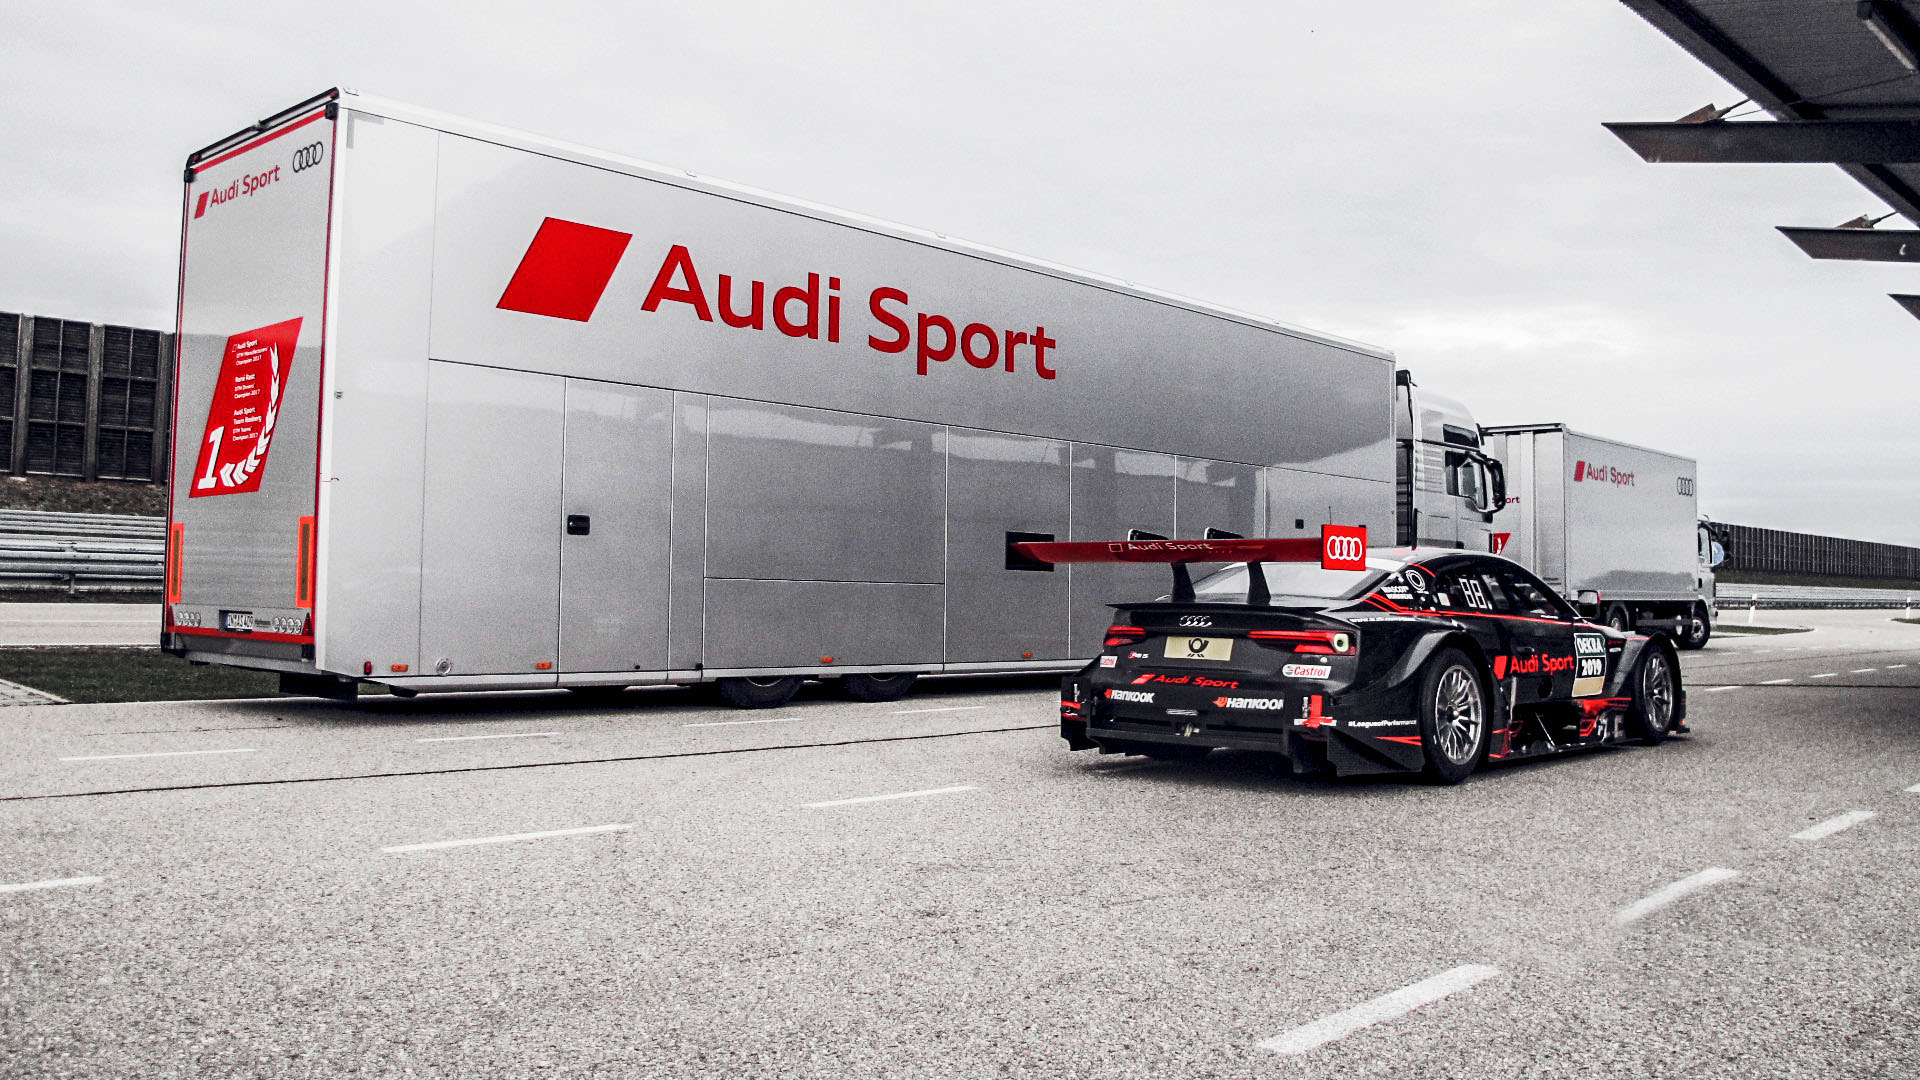 Audi RS 5 DTM in front of Audi Sport truck